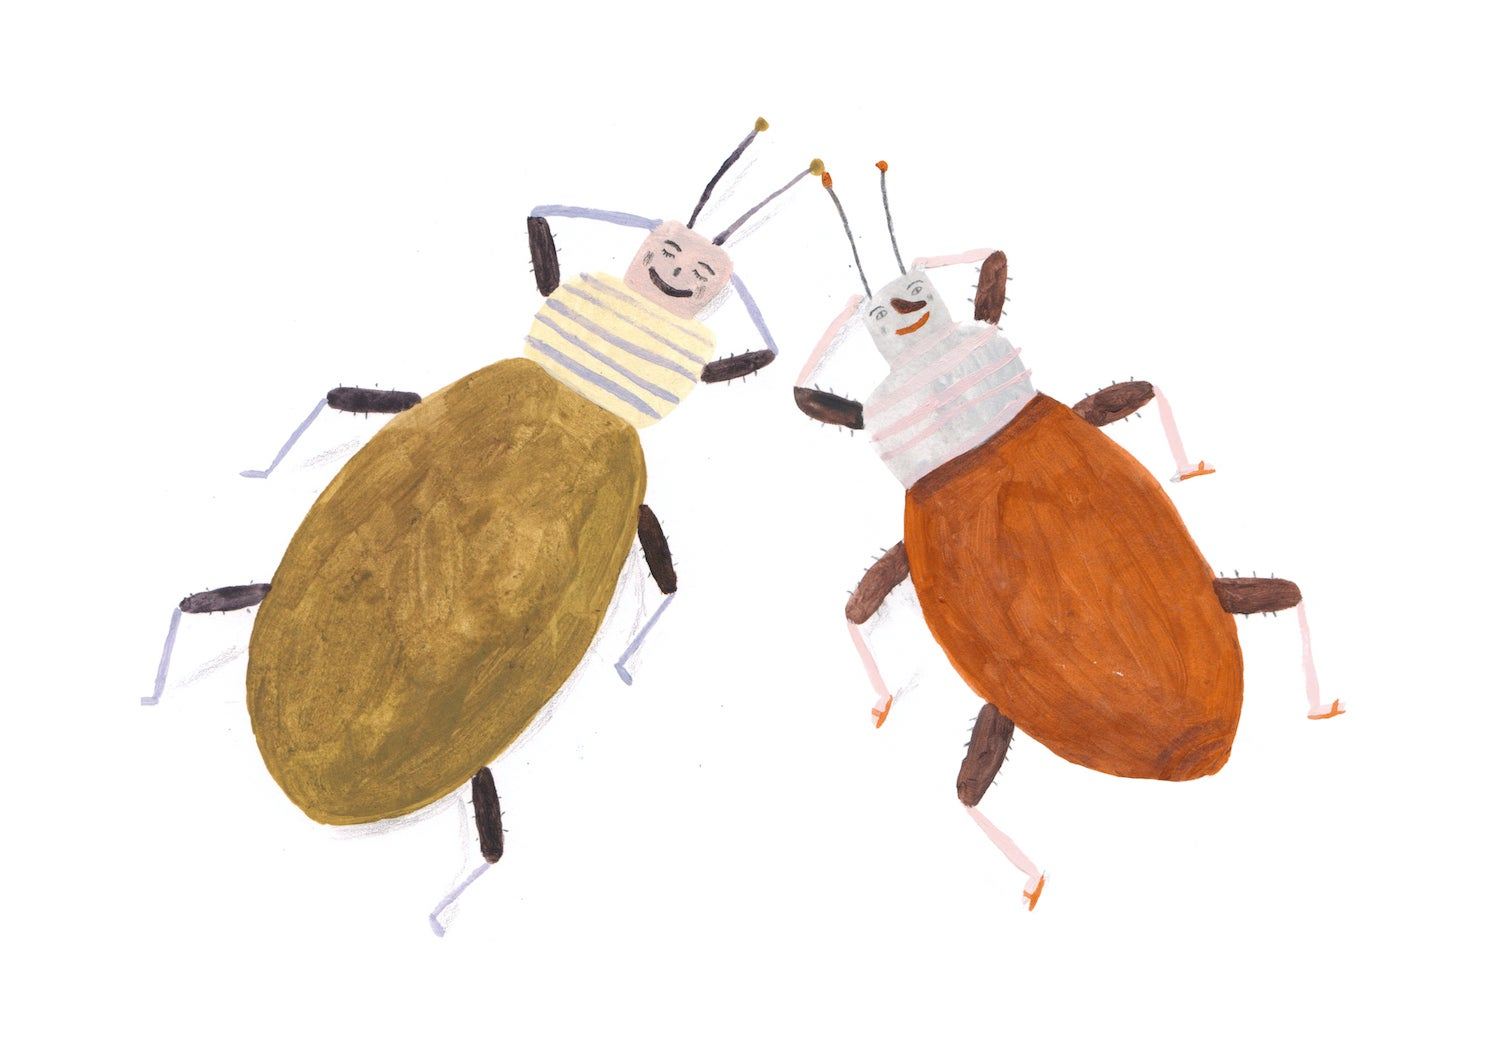 Image of Beetles